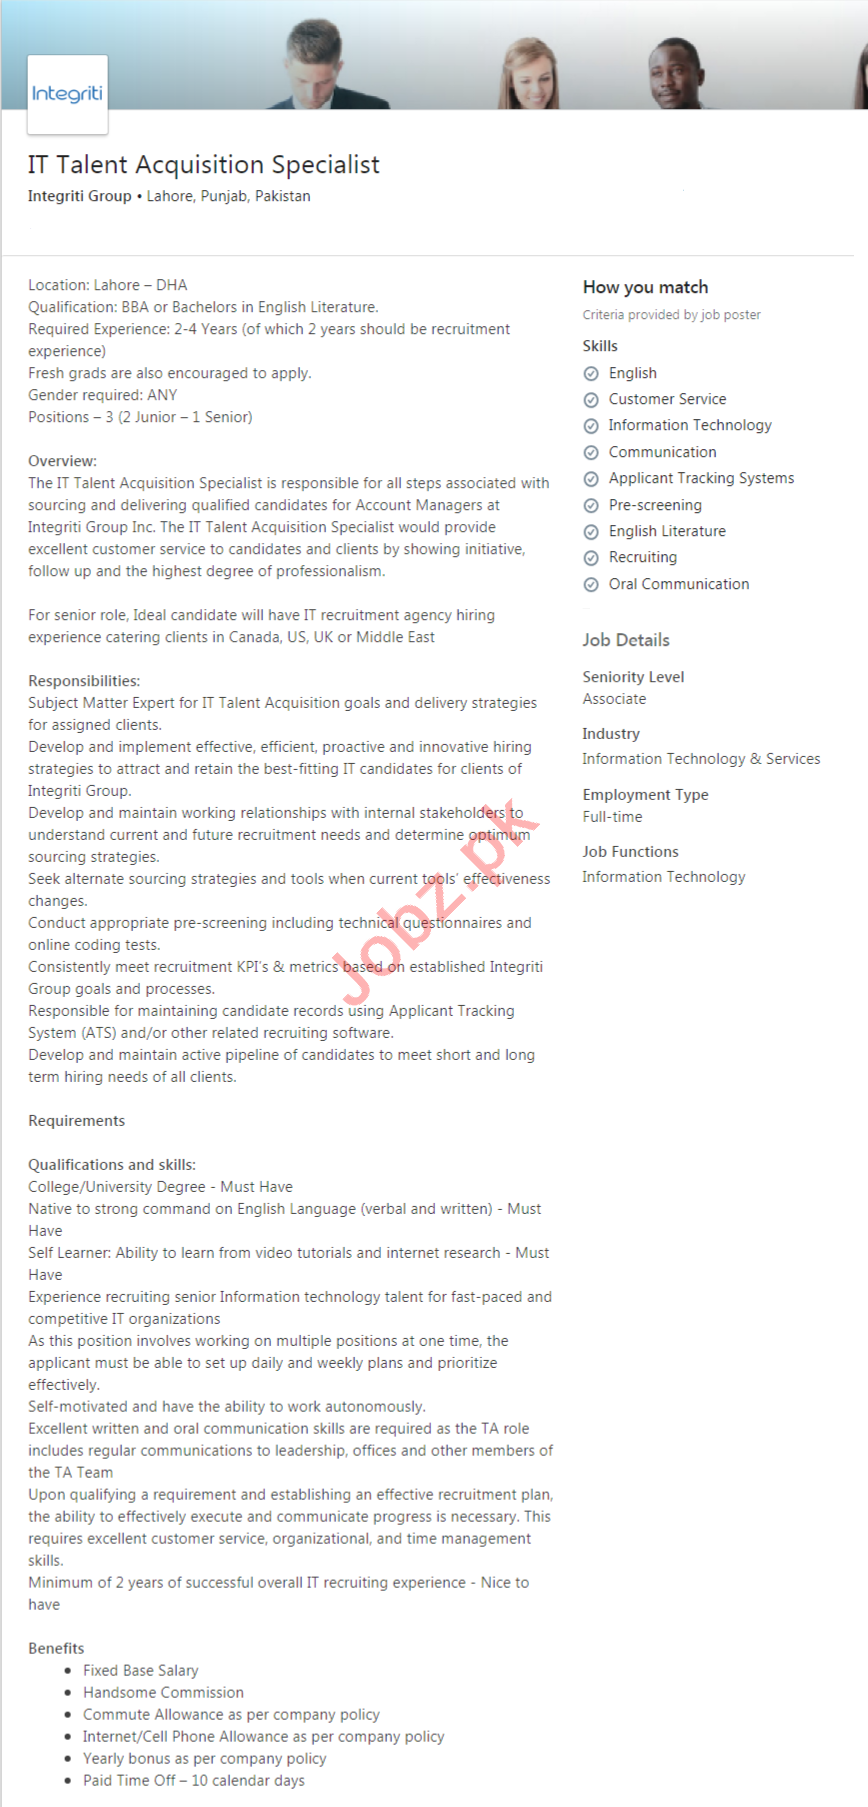 Integriti Group Lahore Jobs IT Talent Acquisition Specialist